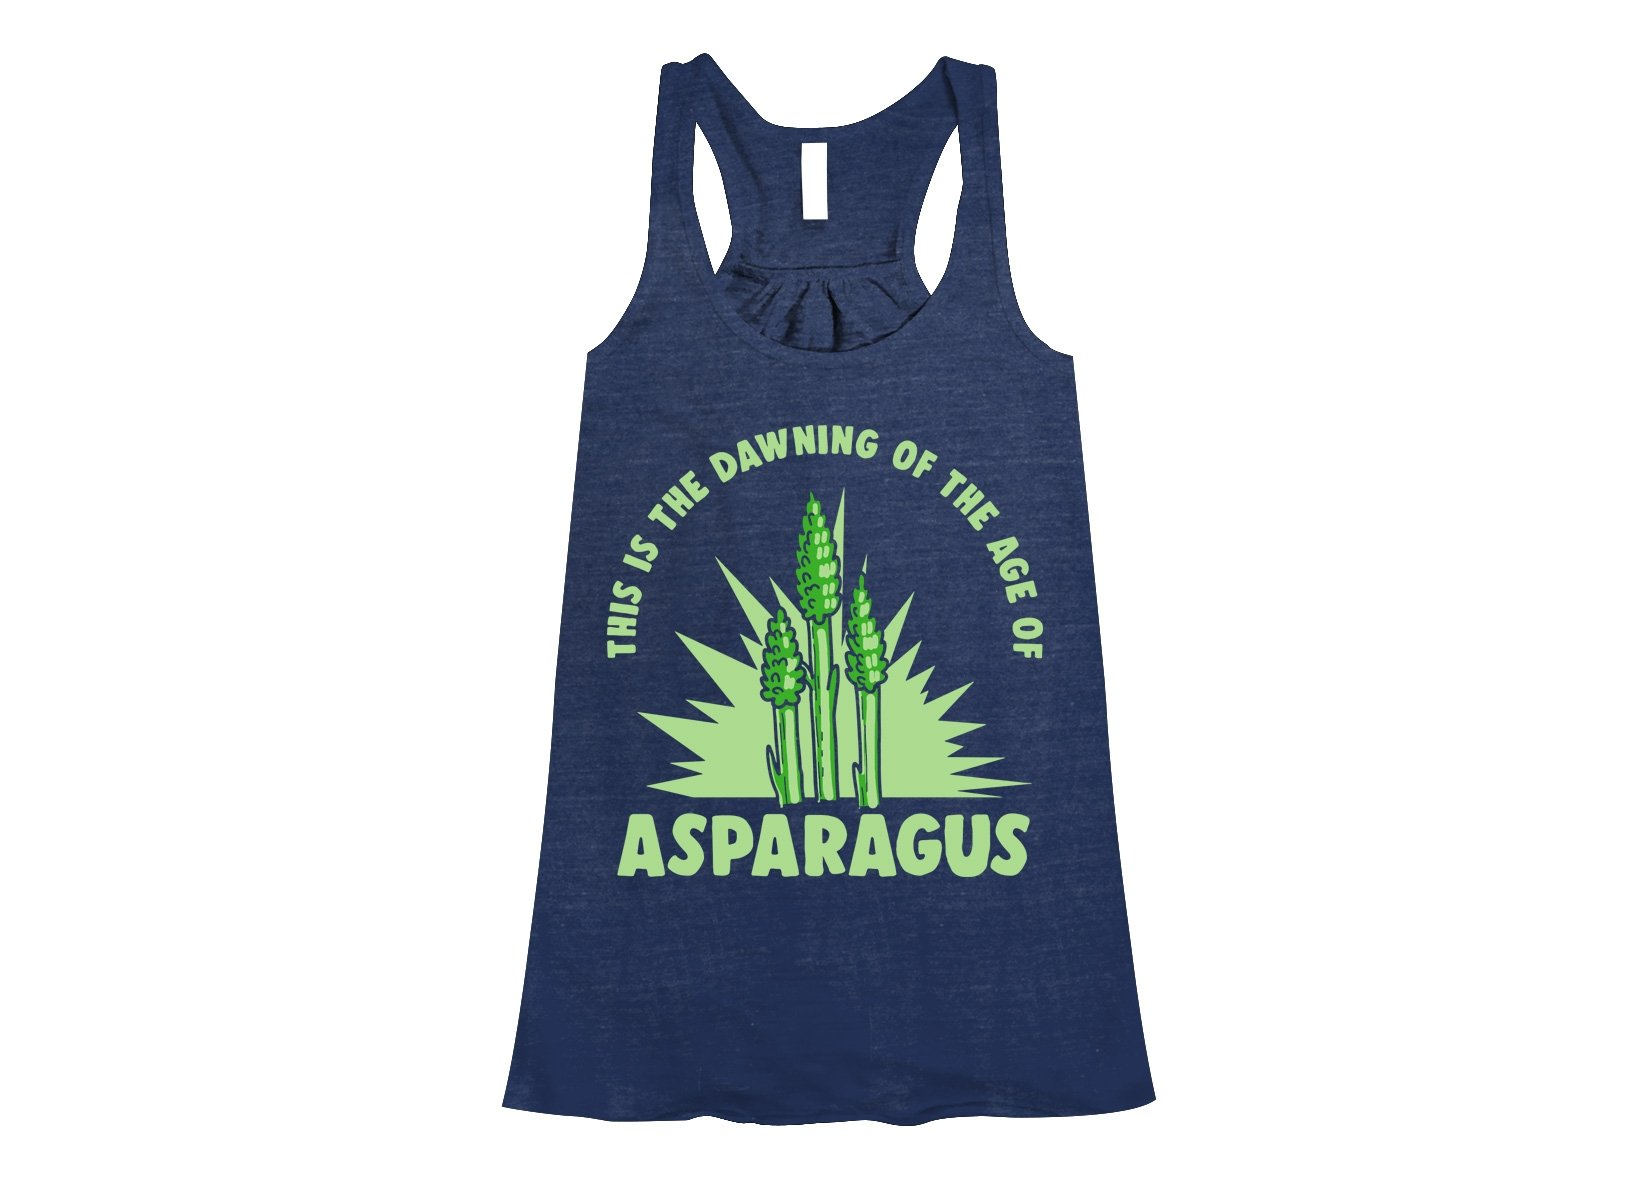 Age Of Asparagus on Womens Tanks T-Shirt